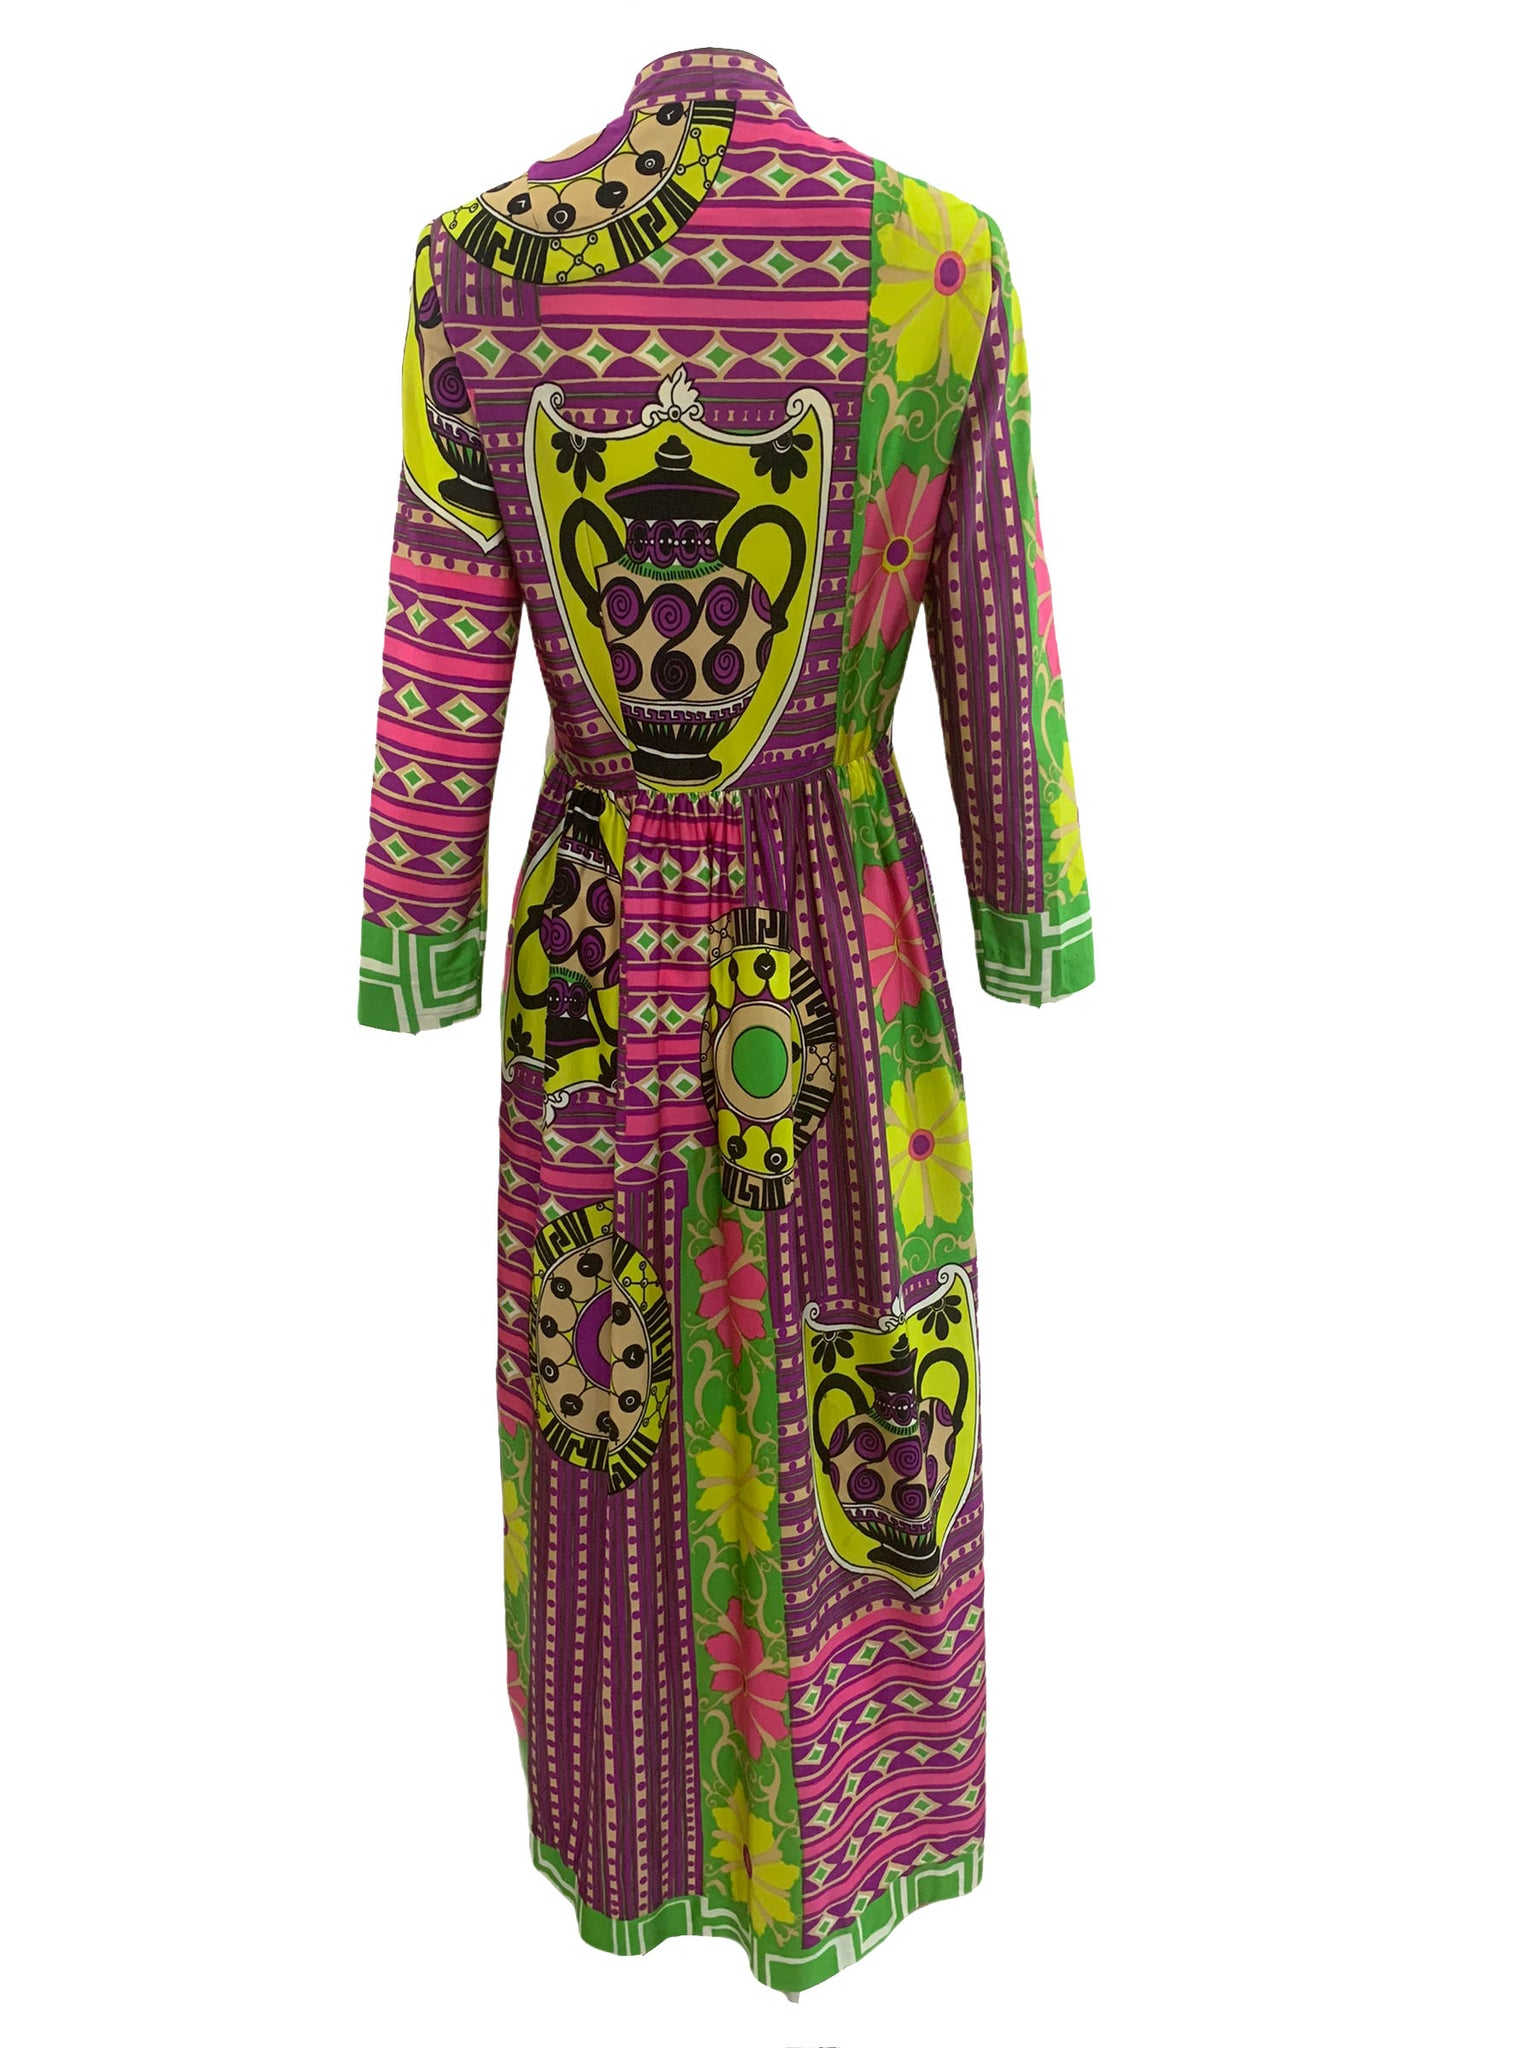 Bernice Lang 70s Psychedelic Maxi Dress BACK 4 of 6